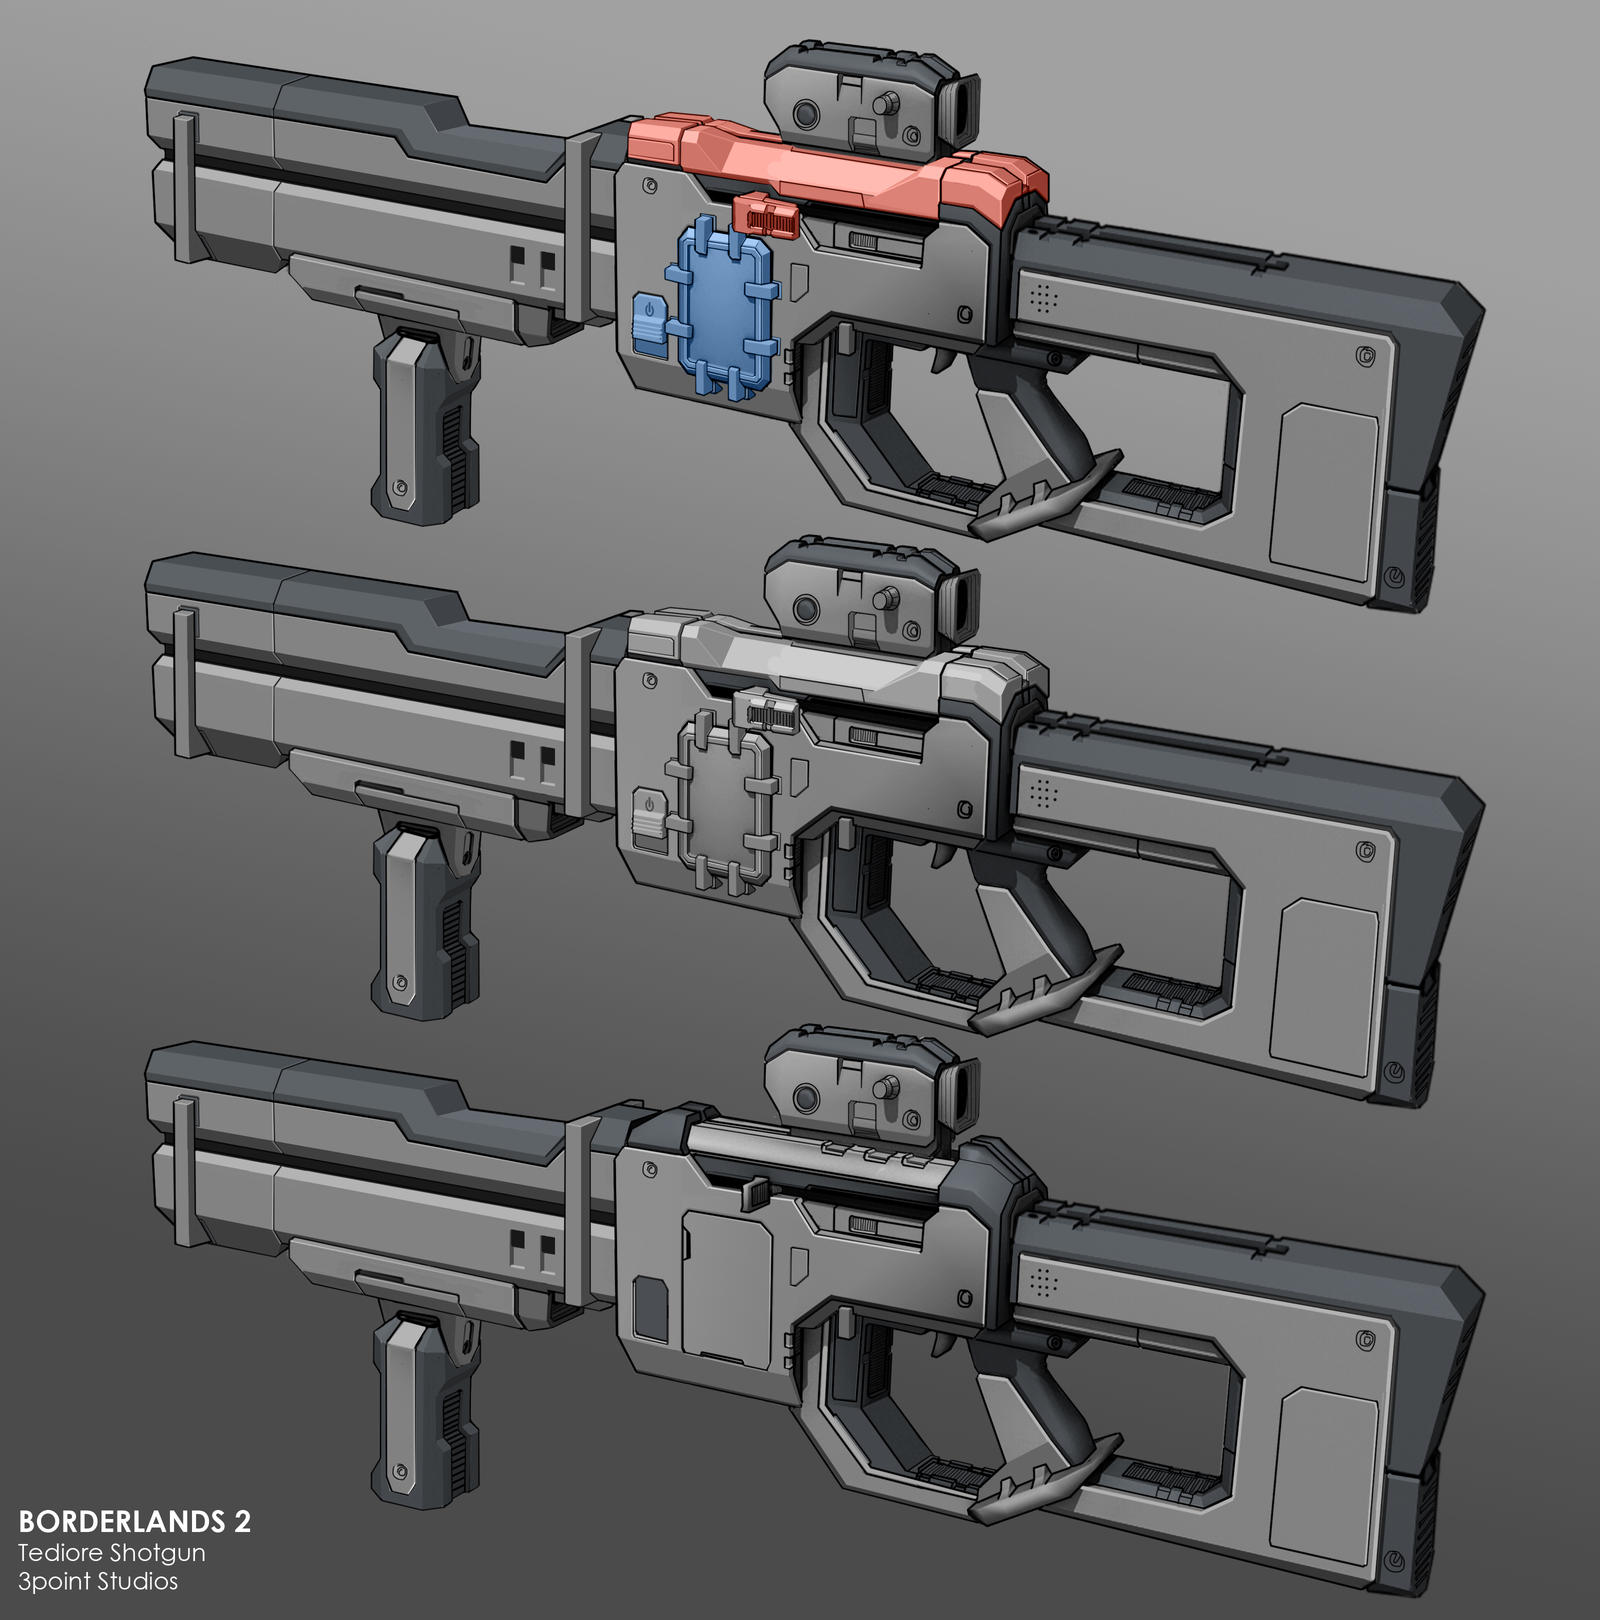 Tediore Shotgun by dfacto on DeviantArt